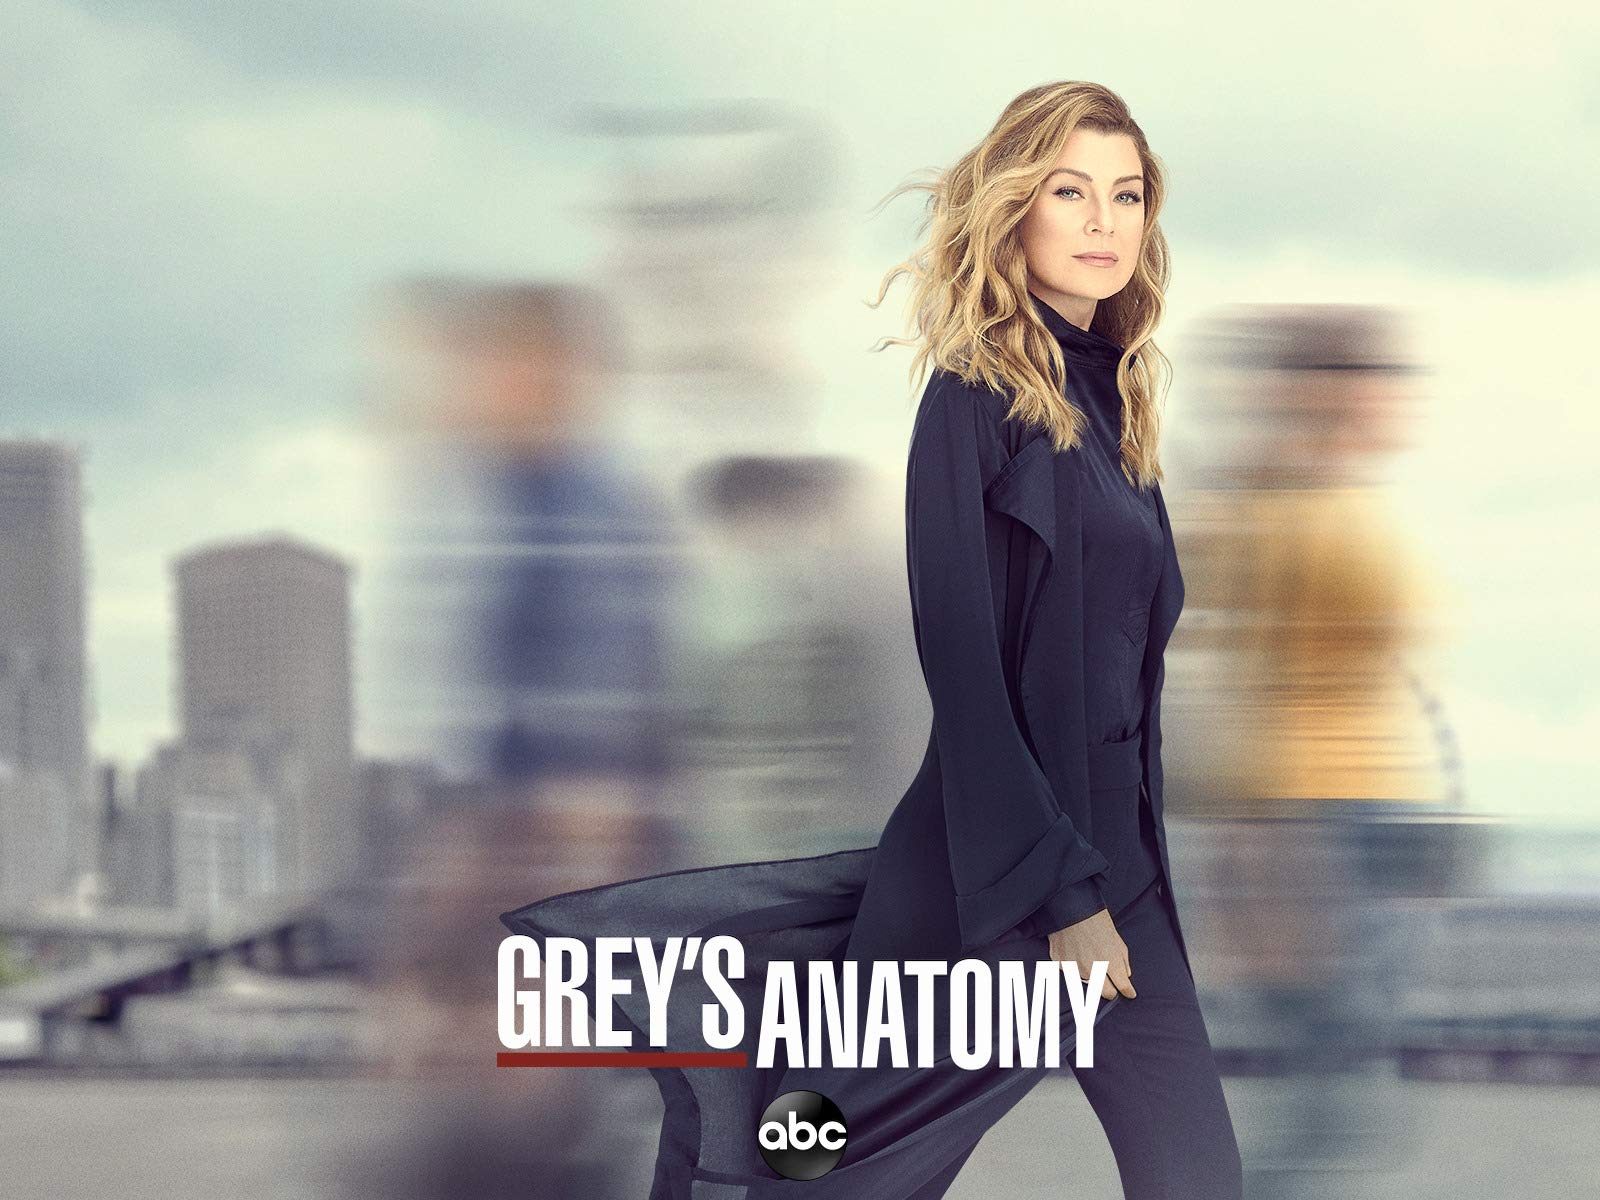 download greys anatomy season 14 free